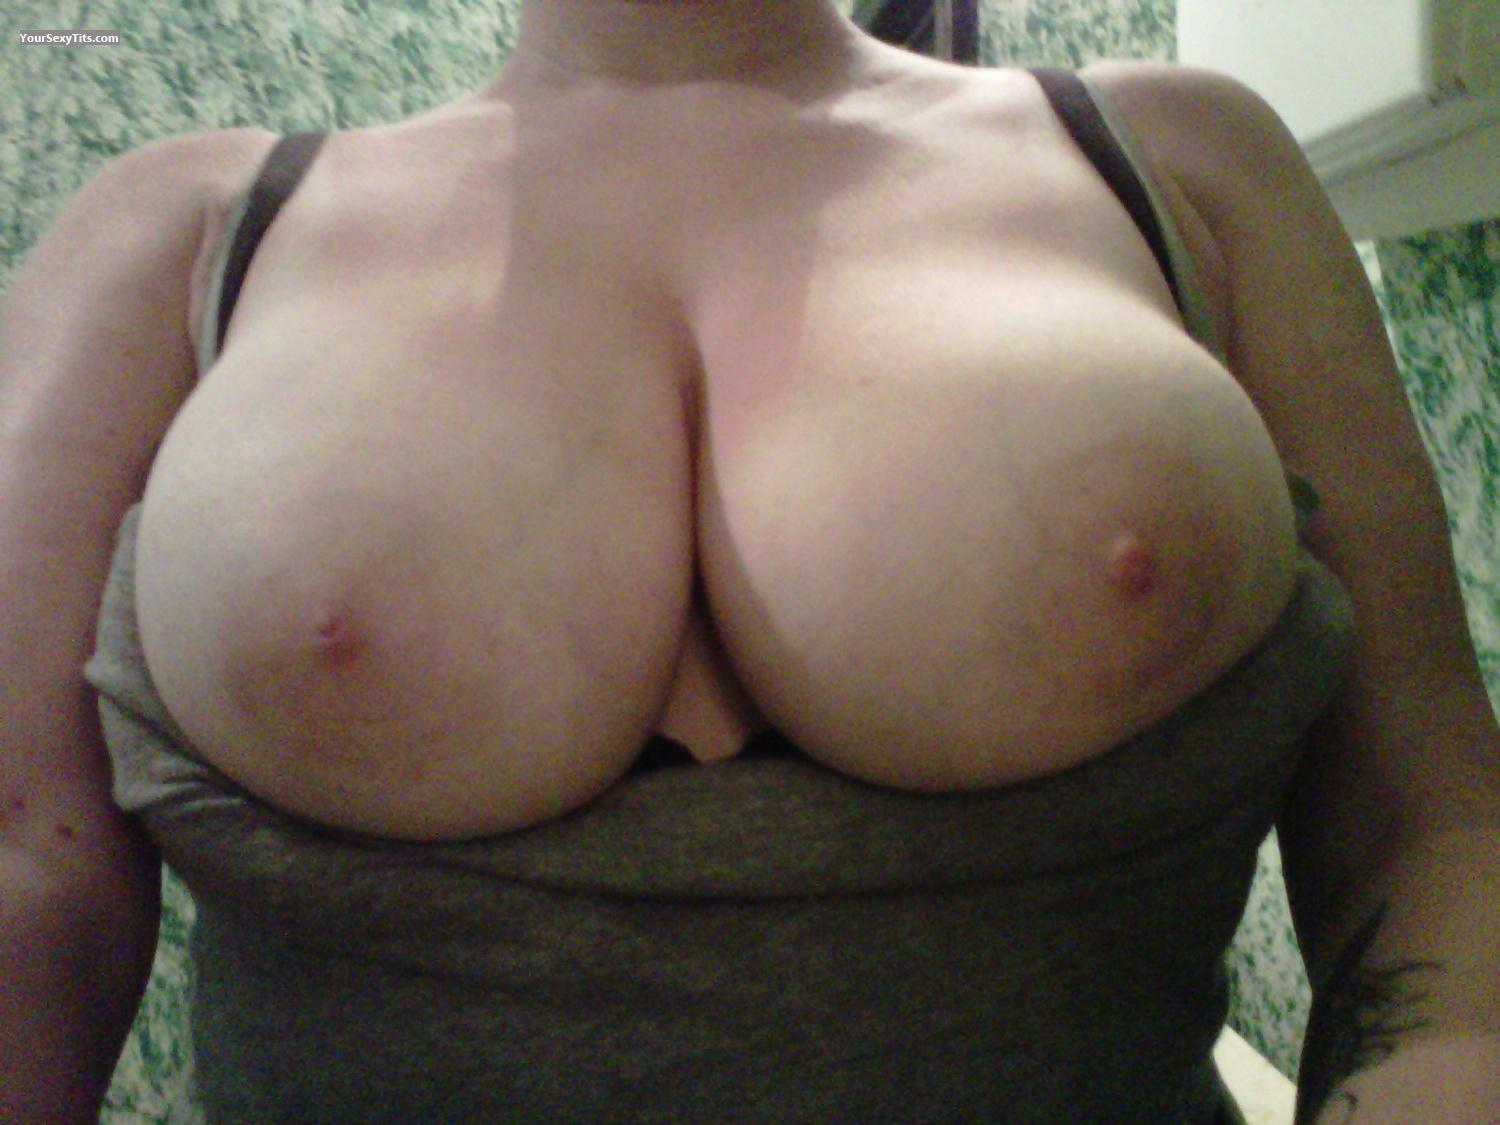 Tit Flash: Very Big Tits By IPhone - Lana from United States